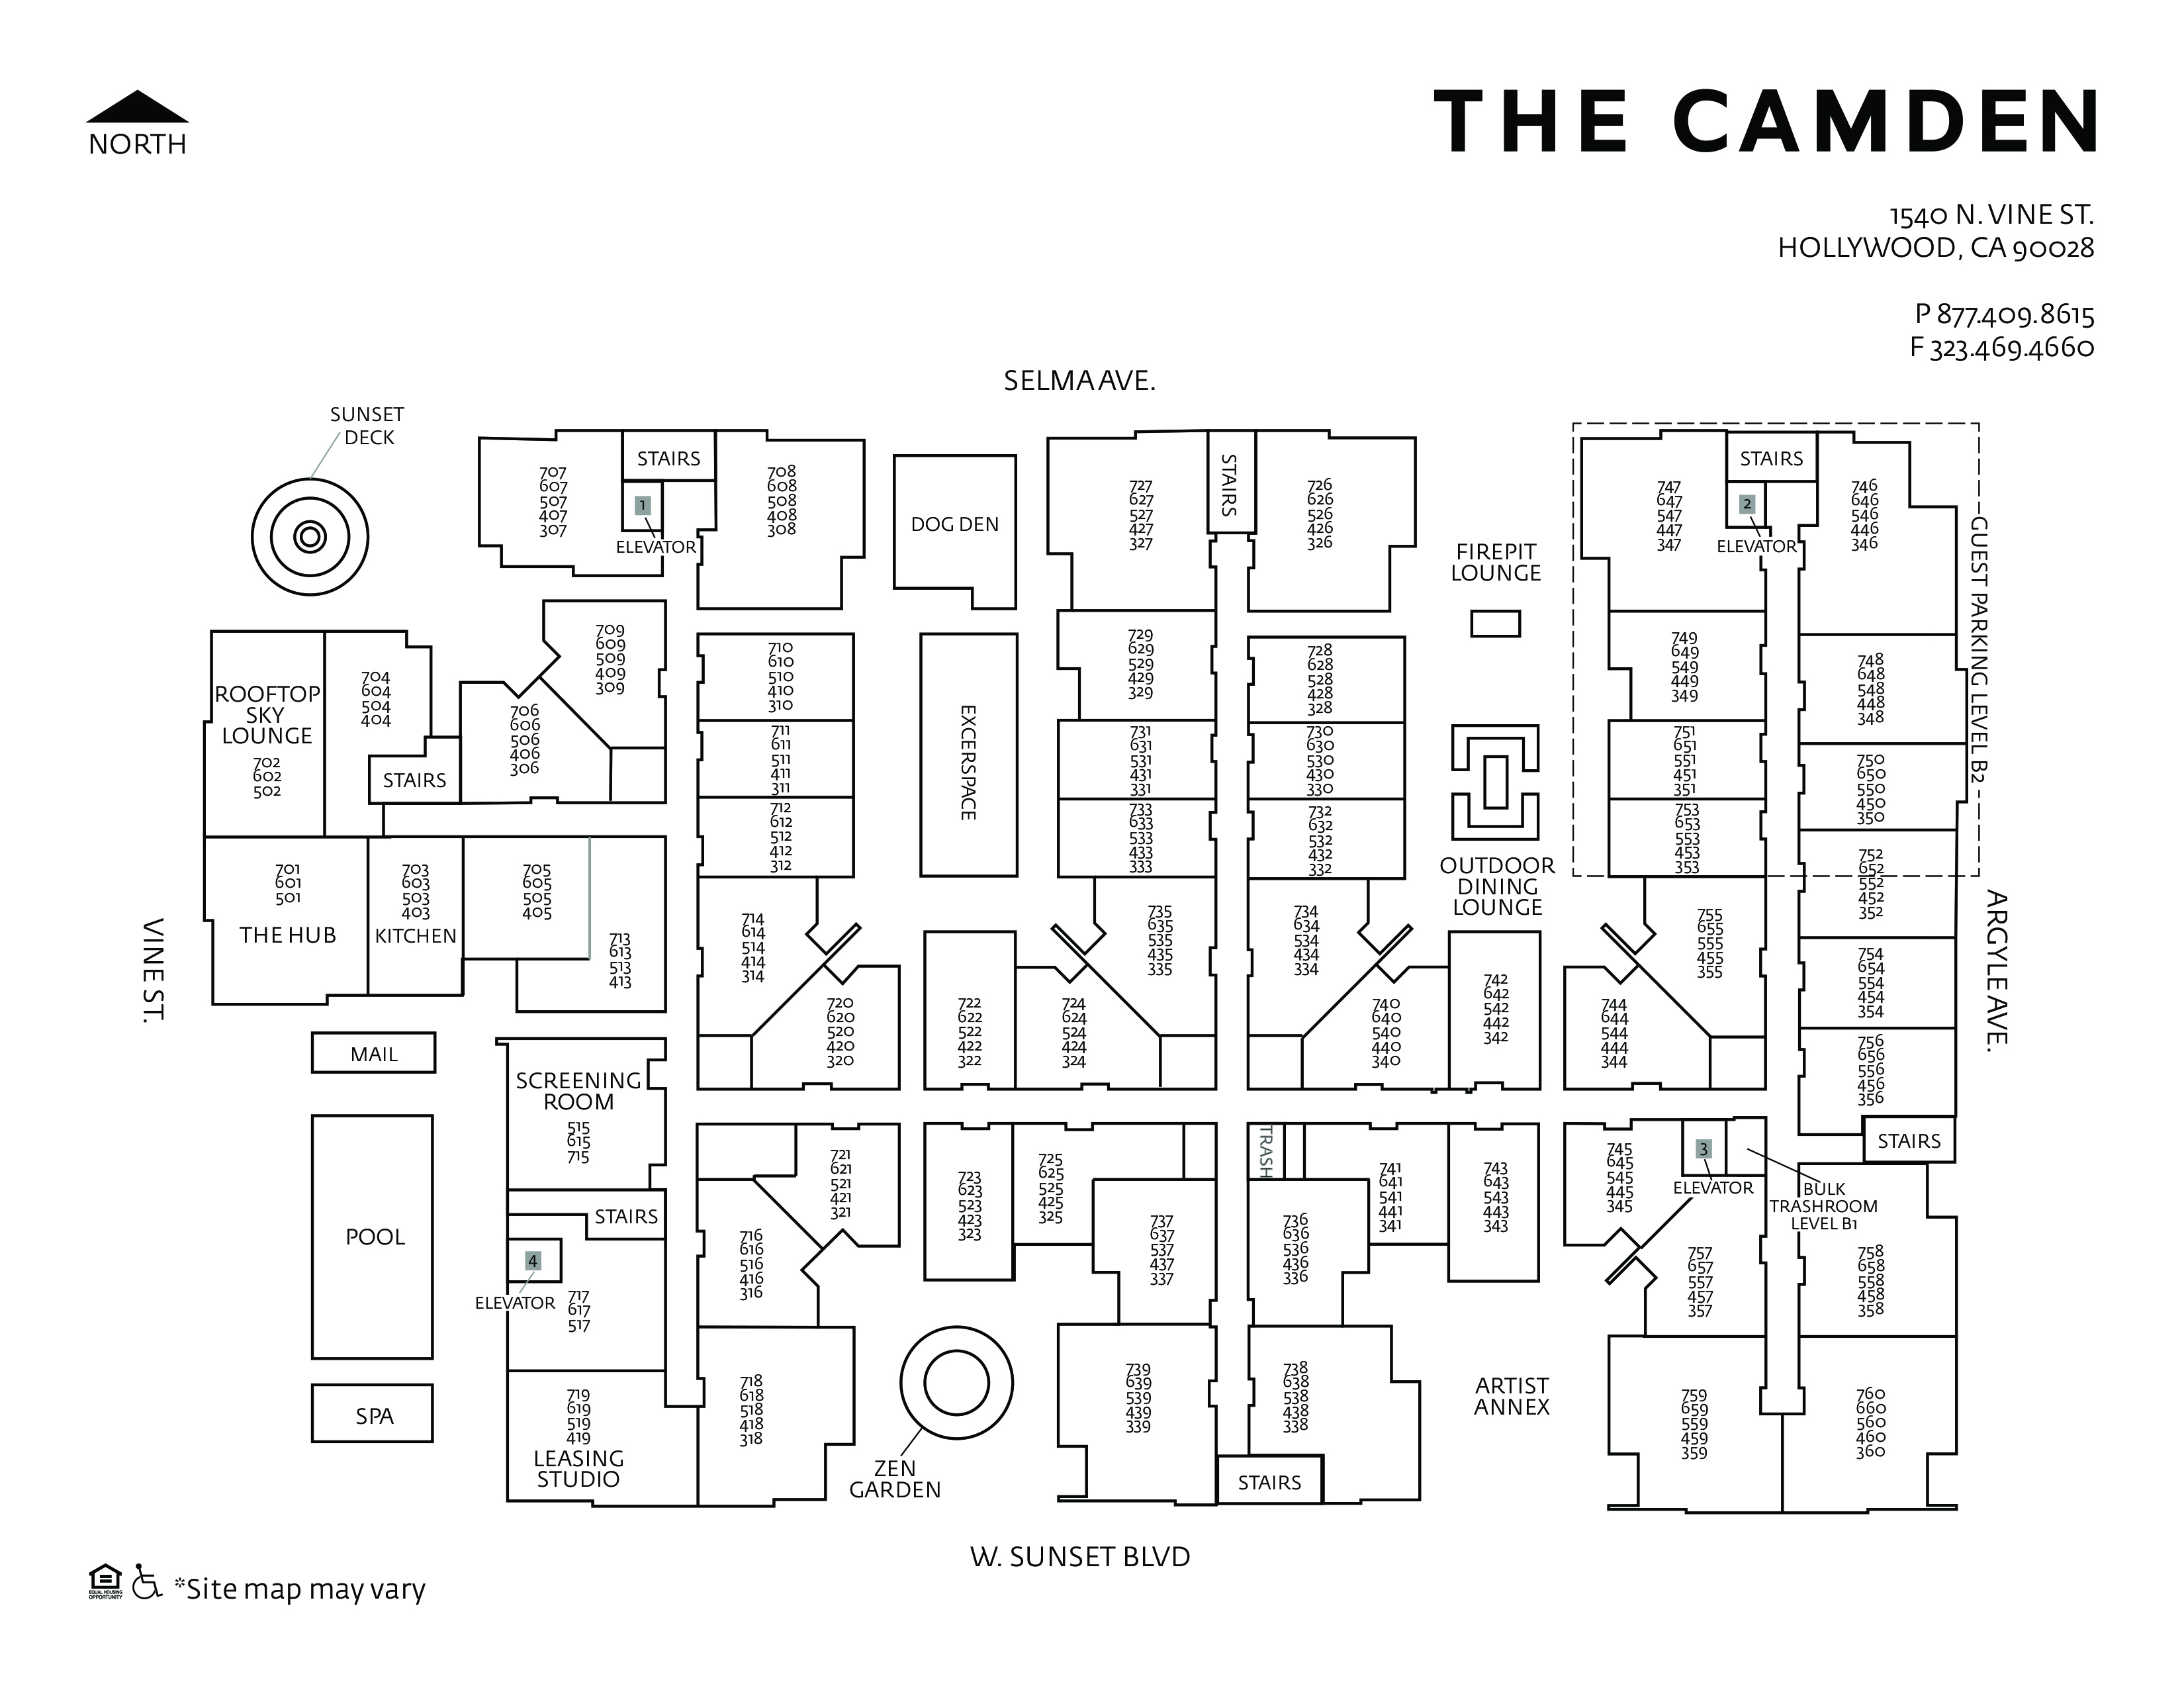 Studio 1 2 Bedroom Apartments In Hollywood Ca The Camden - Cheap-1-bedroom-apartments-plans